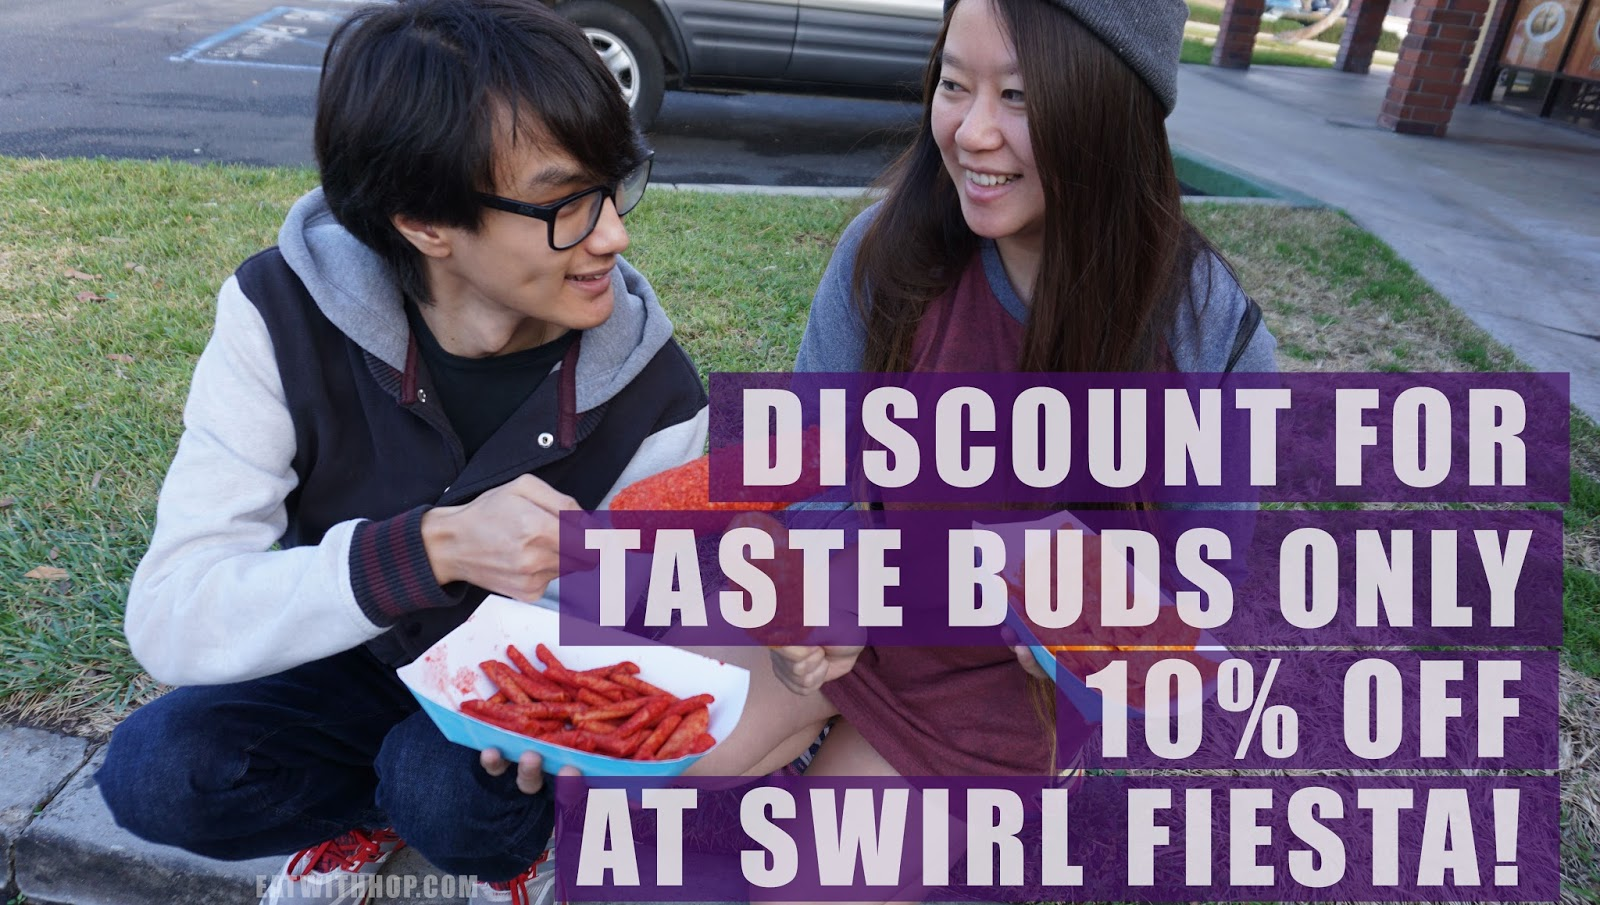 TASTE BUDS ONLY: Get 10% Off Any Swirl Fiesta Purchase in Riverside!